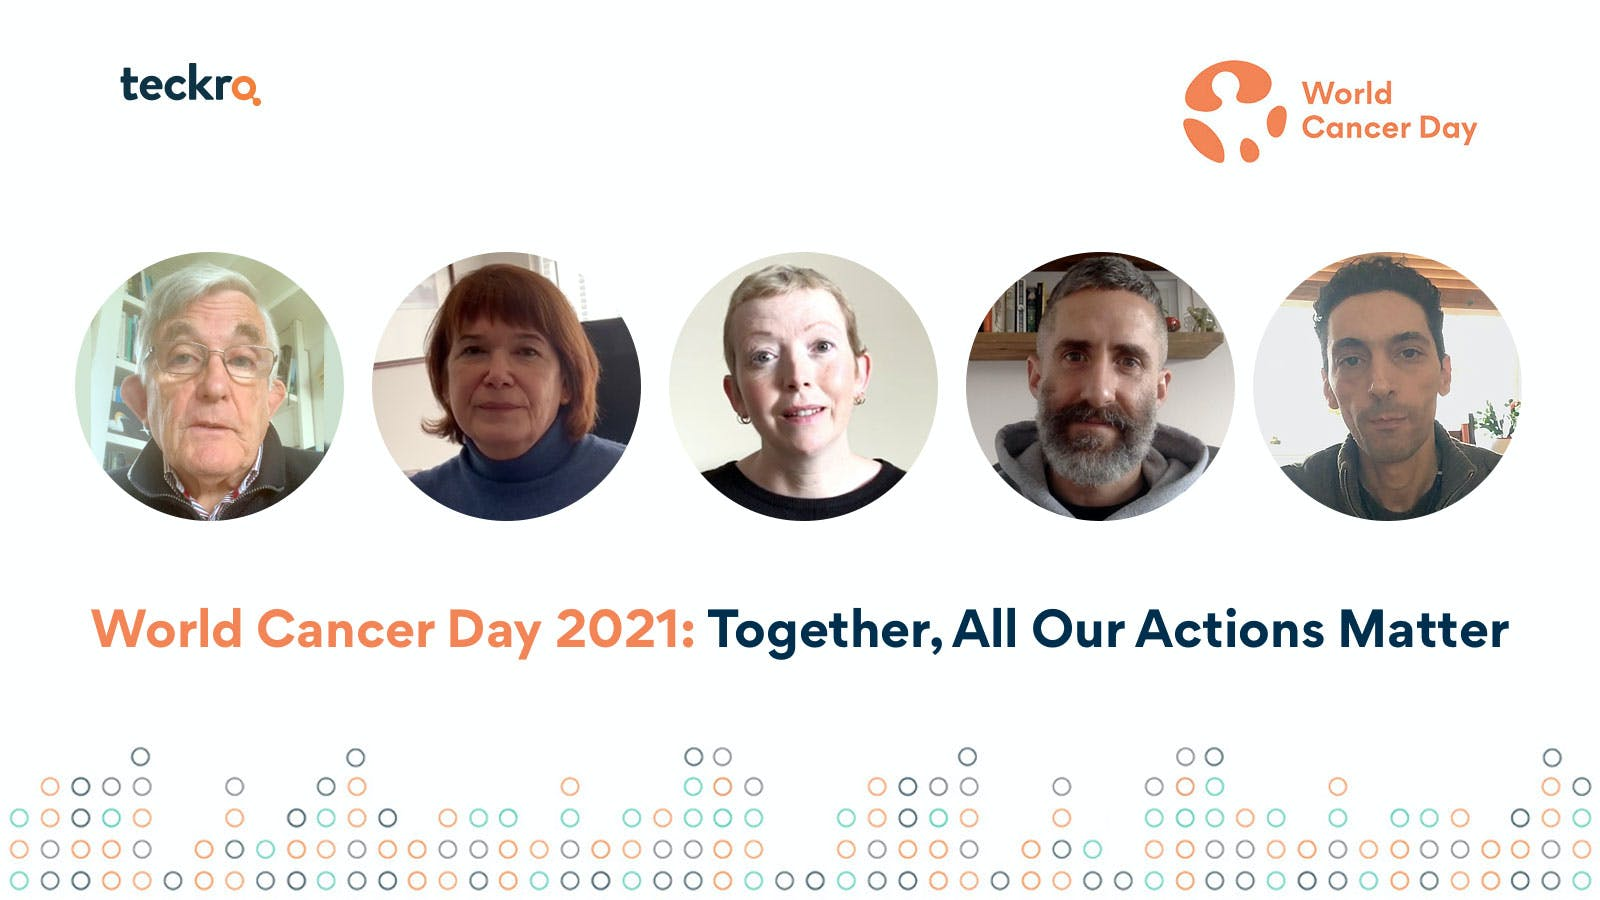 World Cancer Day 2021 - Together, all our actions matter.